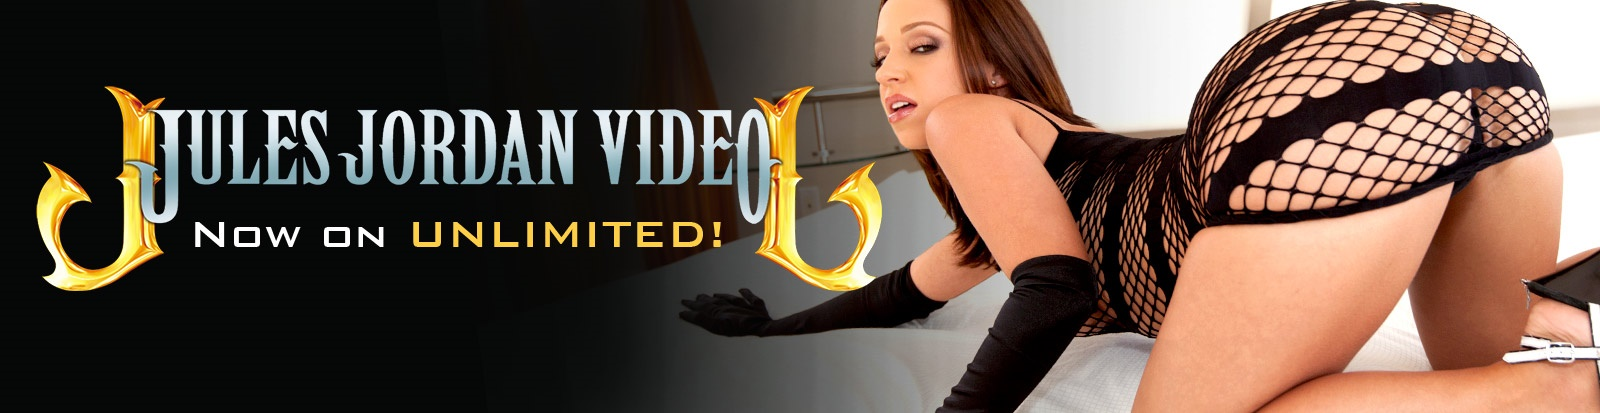 Watch Jules Jordan Video movies on Adult Empire Unlimited.